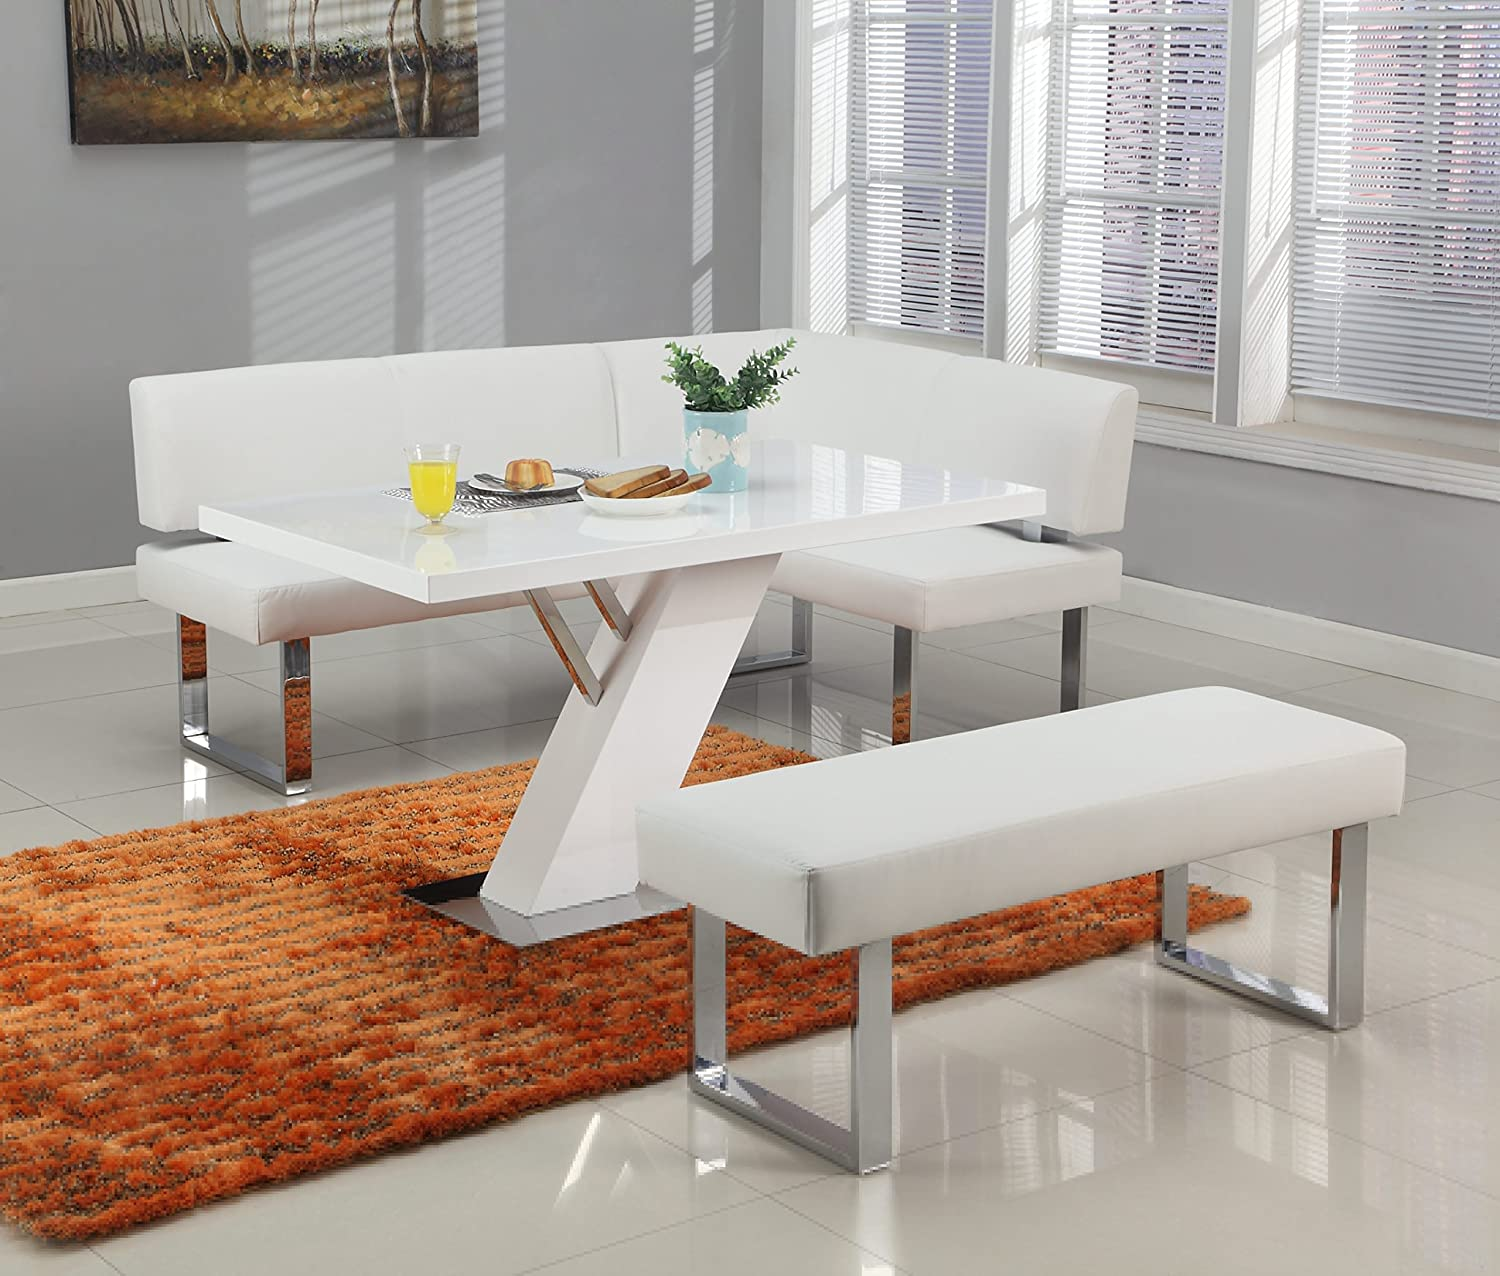 Milan LILLIAN-DT Lillian Gloss White Modern Design Dining Table